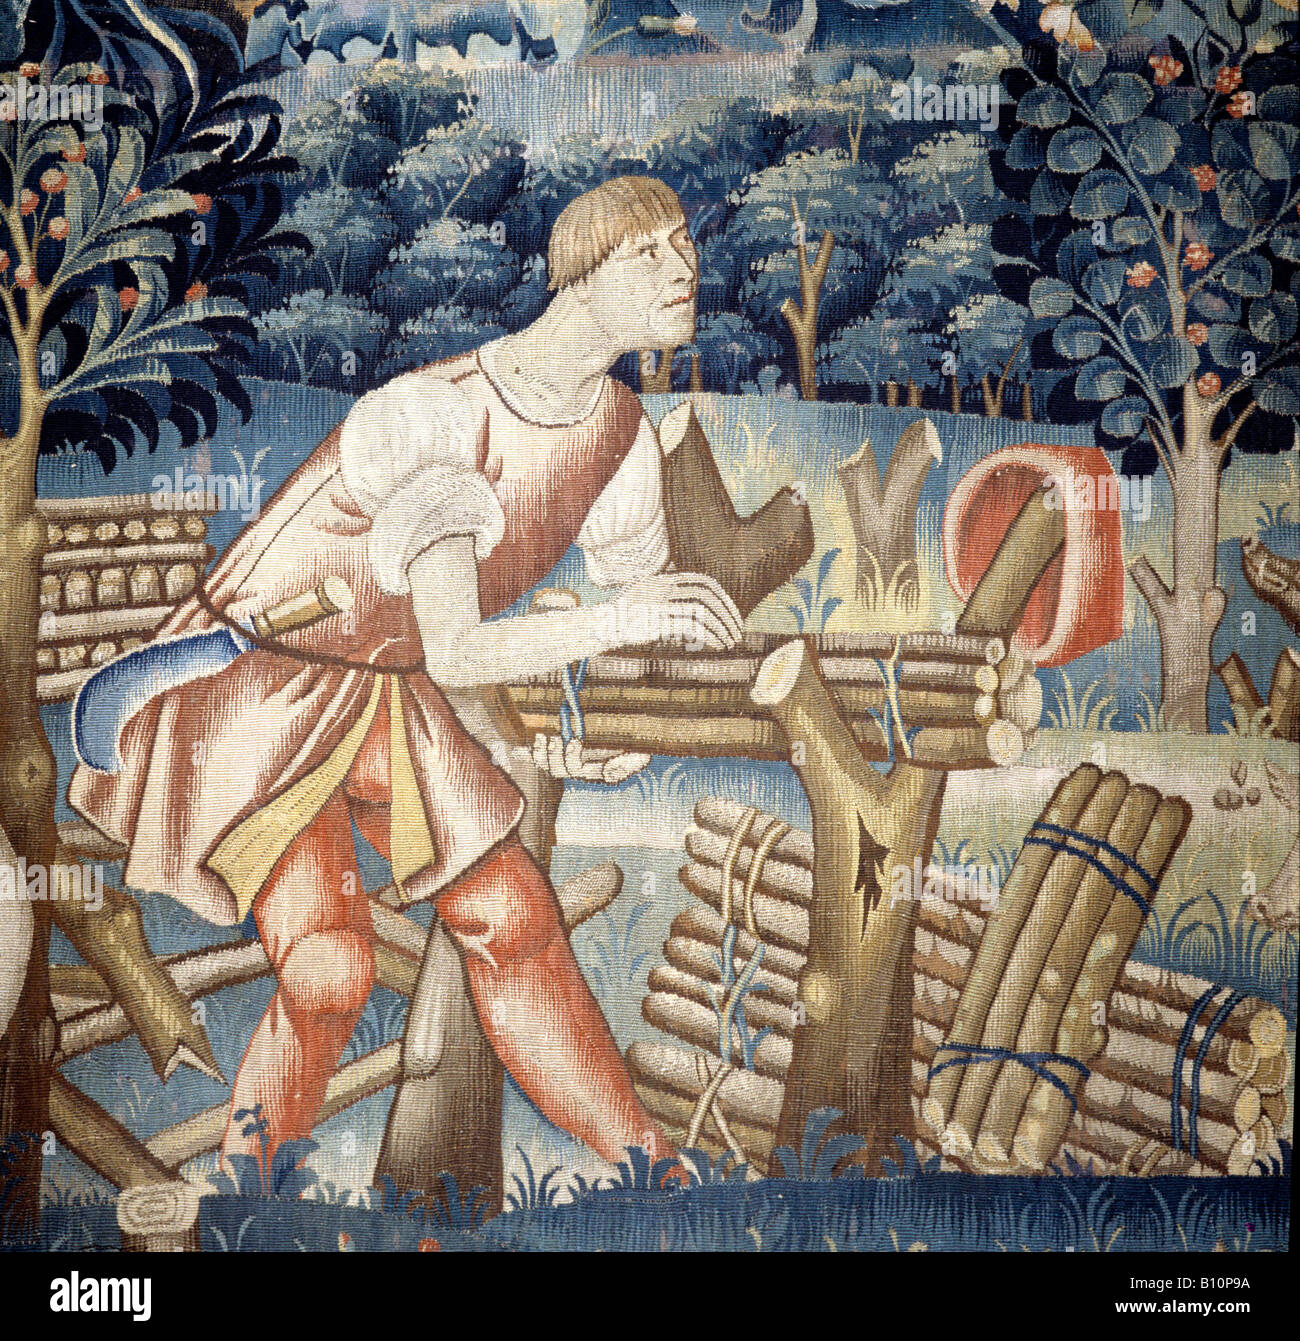 Flemish Tapestry woodcutter Le Main Chaud Early 16th cent Belgium  ©The Ancient Art & Architecture Collection - Stock Image